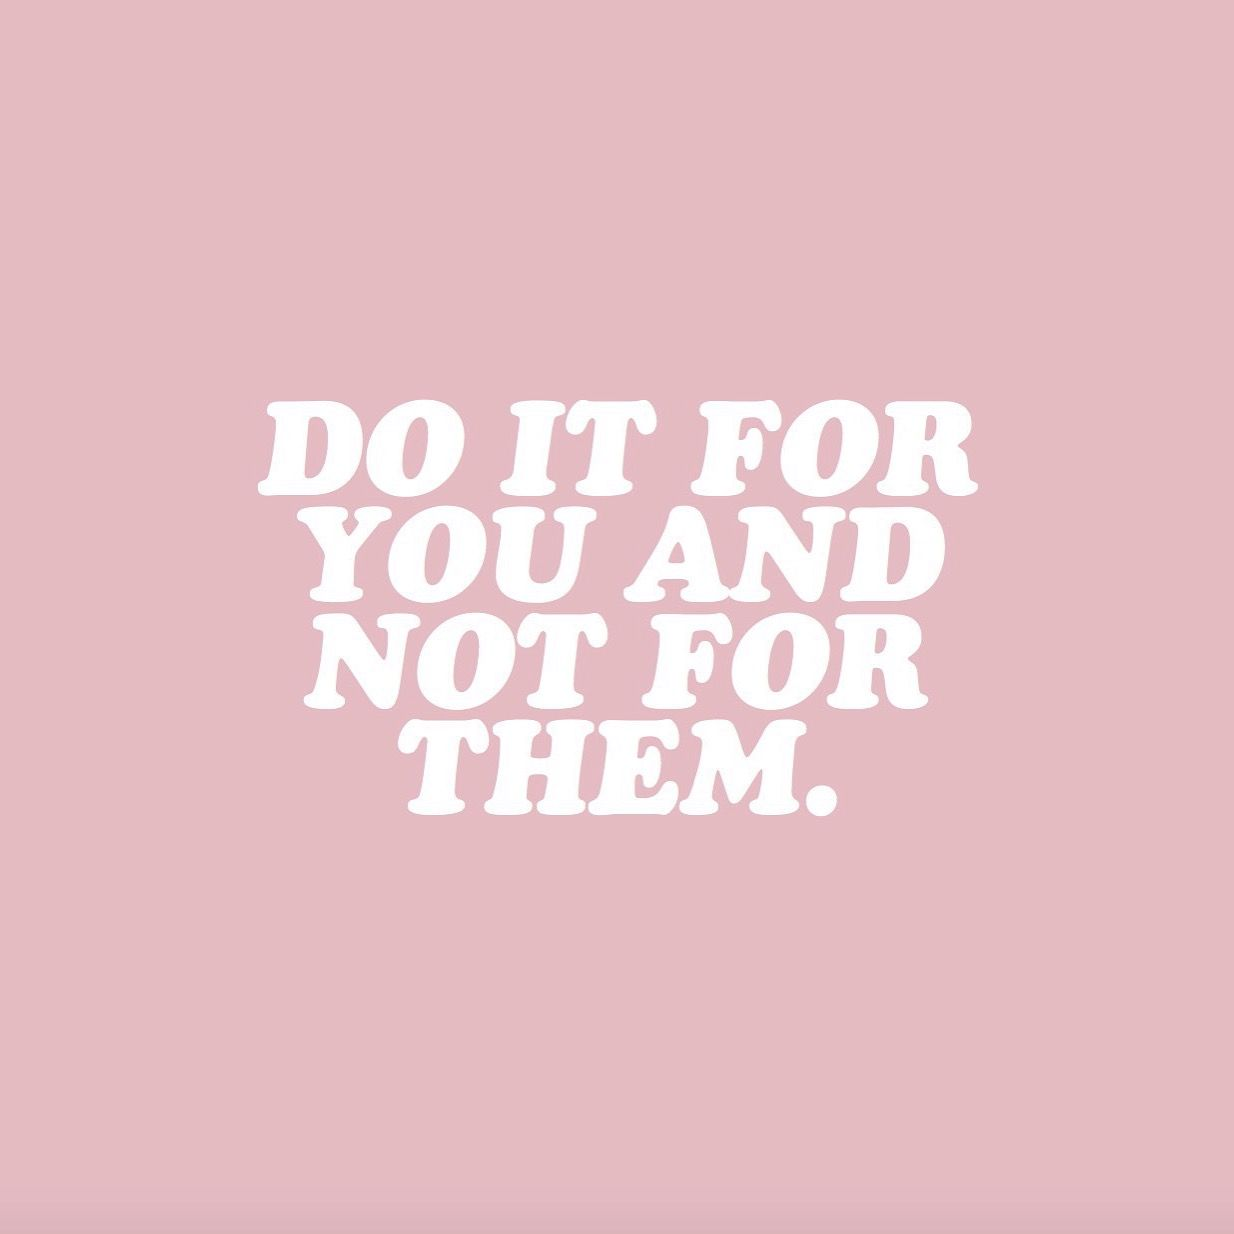 Girlboss Mood Do It For You And Not Them Quote Inspiration